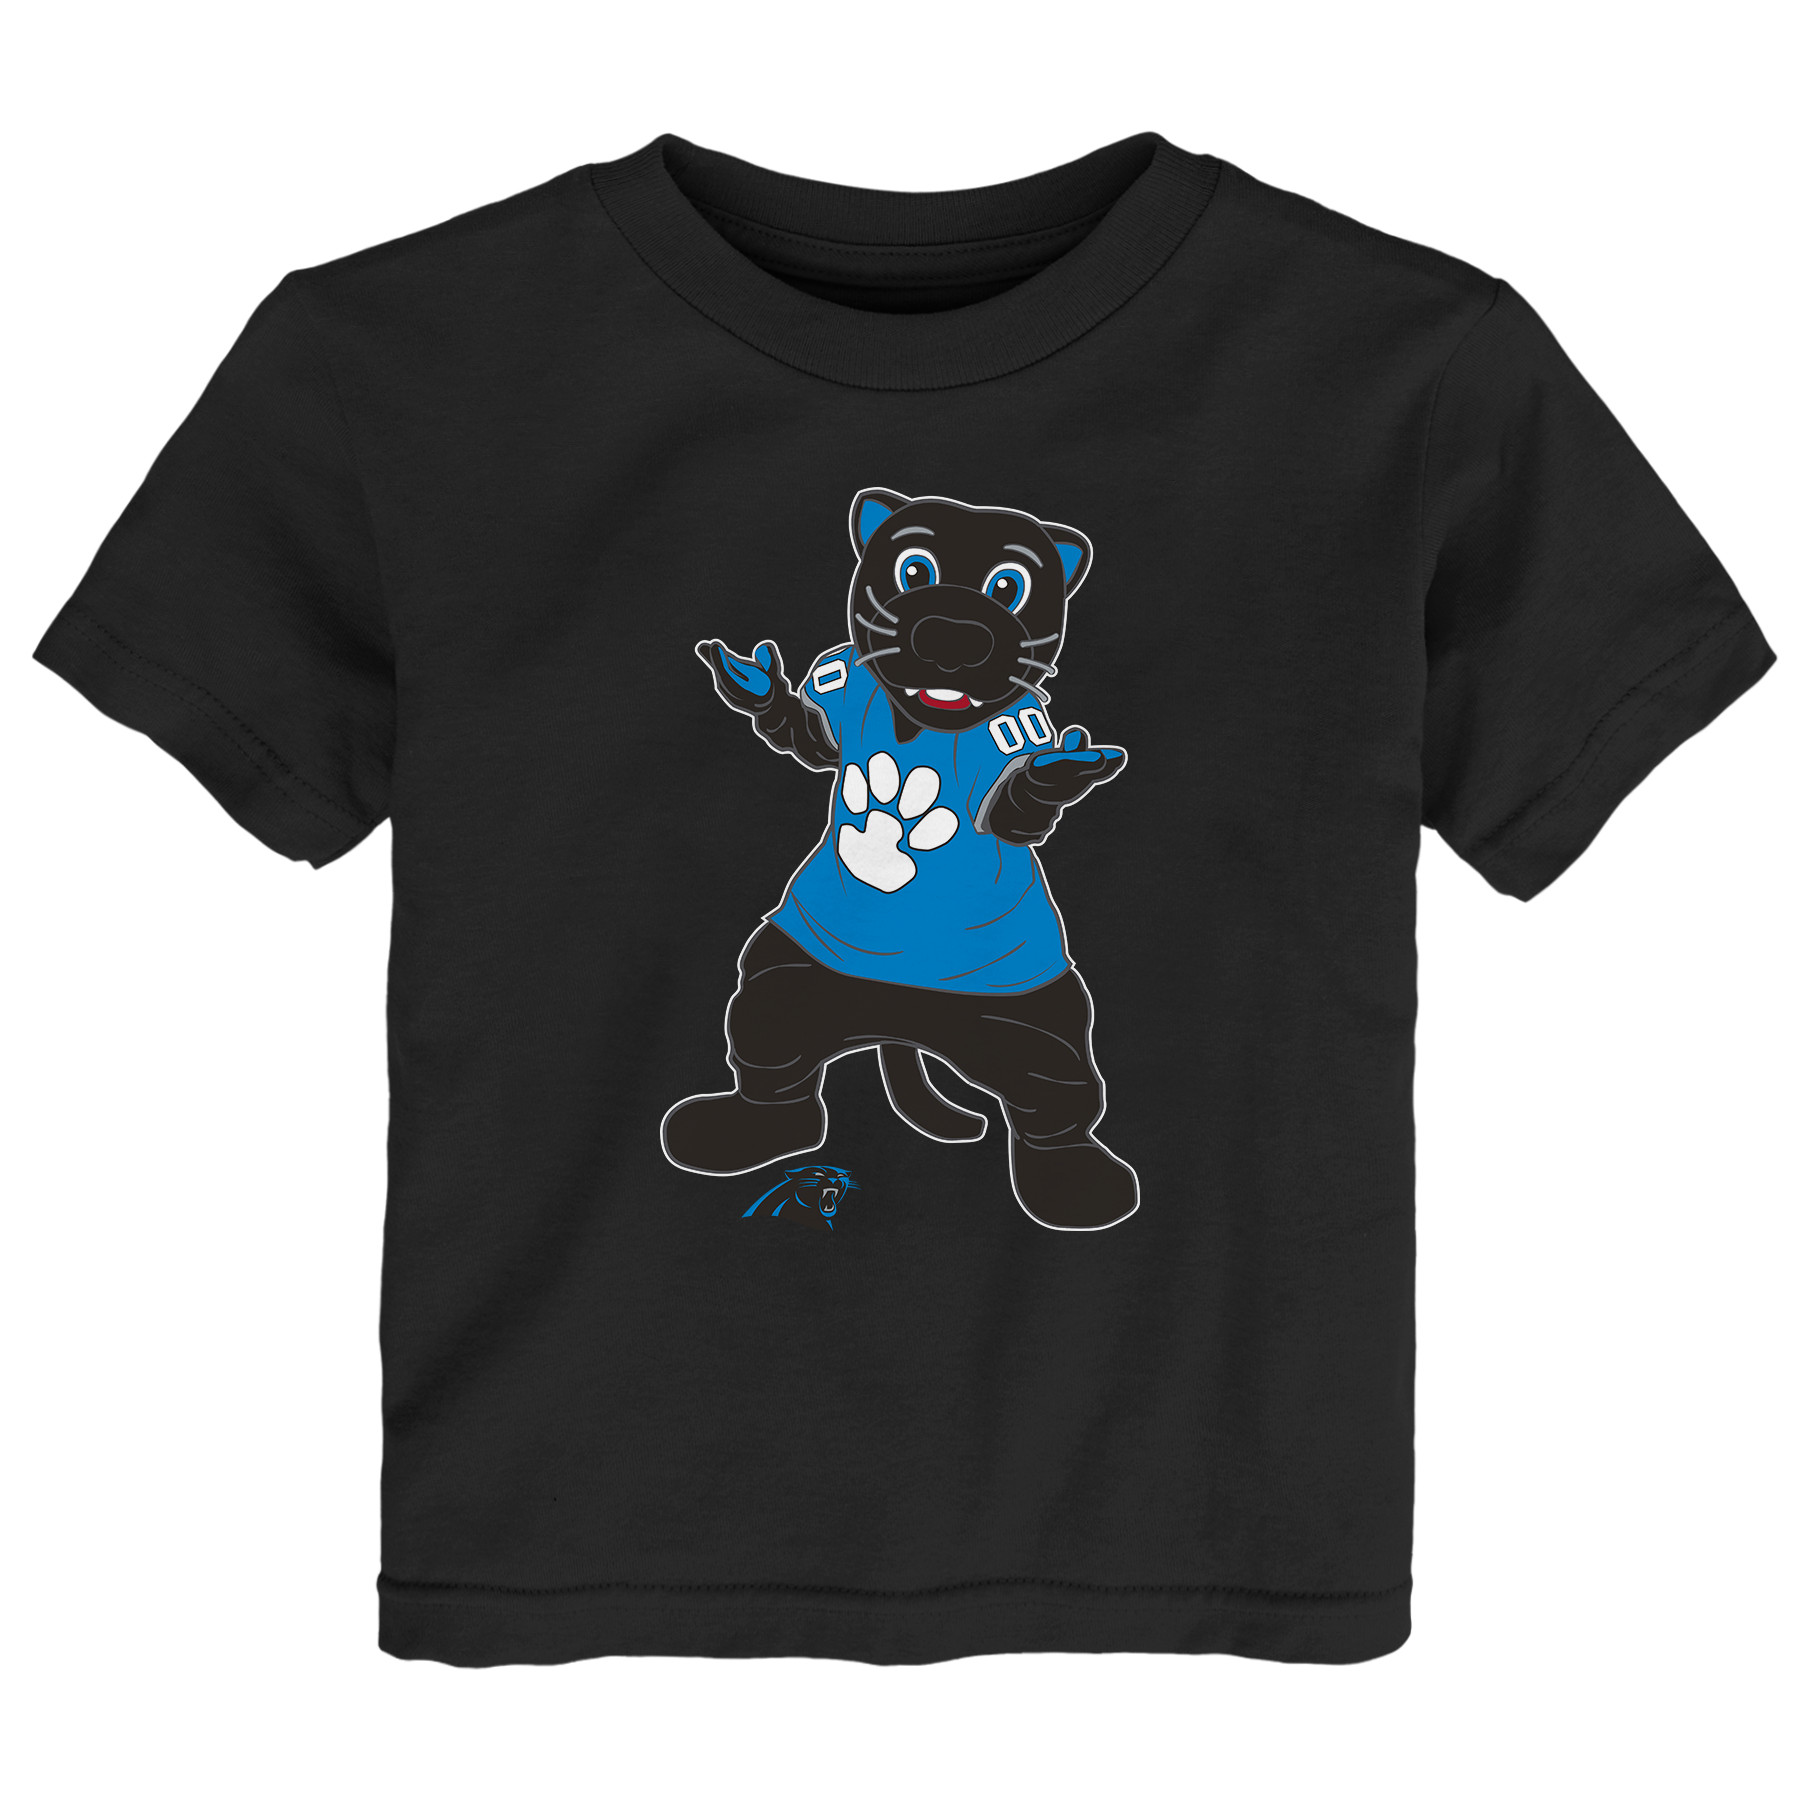 Carolina Panthers Toddler Standing Team Mascot T-Shirt - Black - 2T